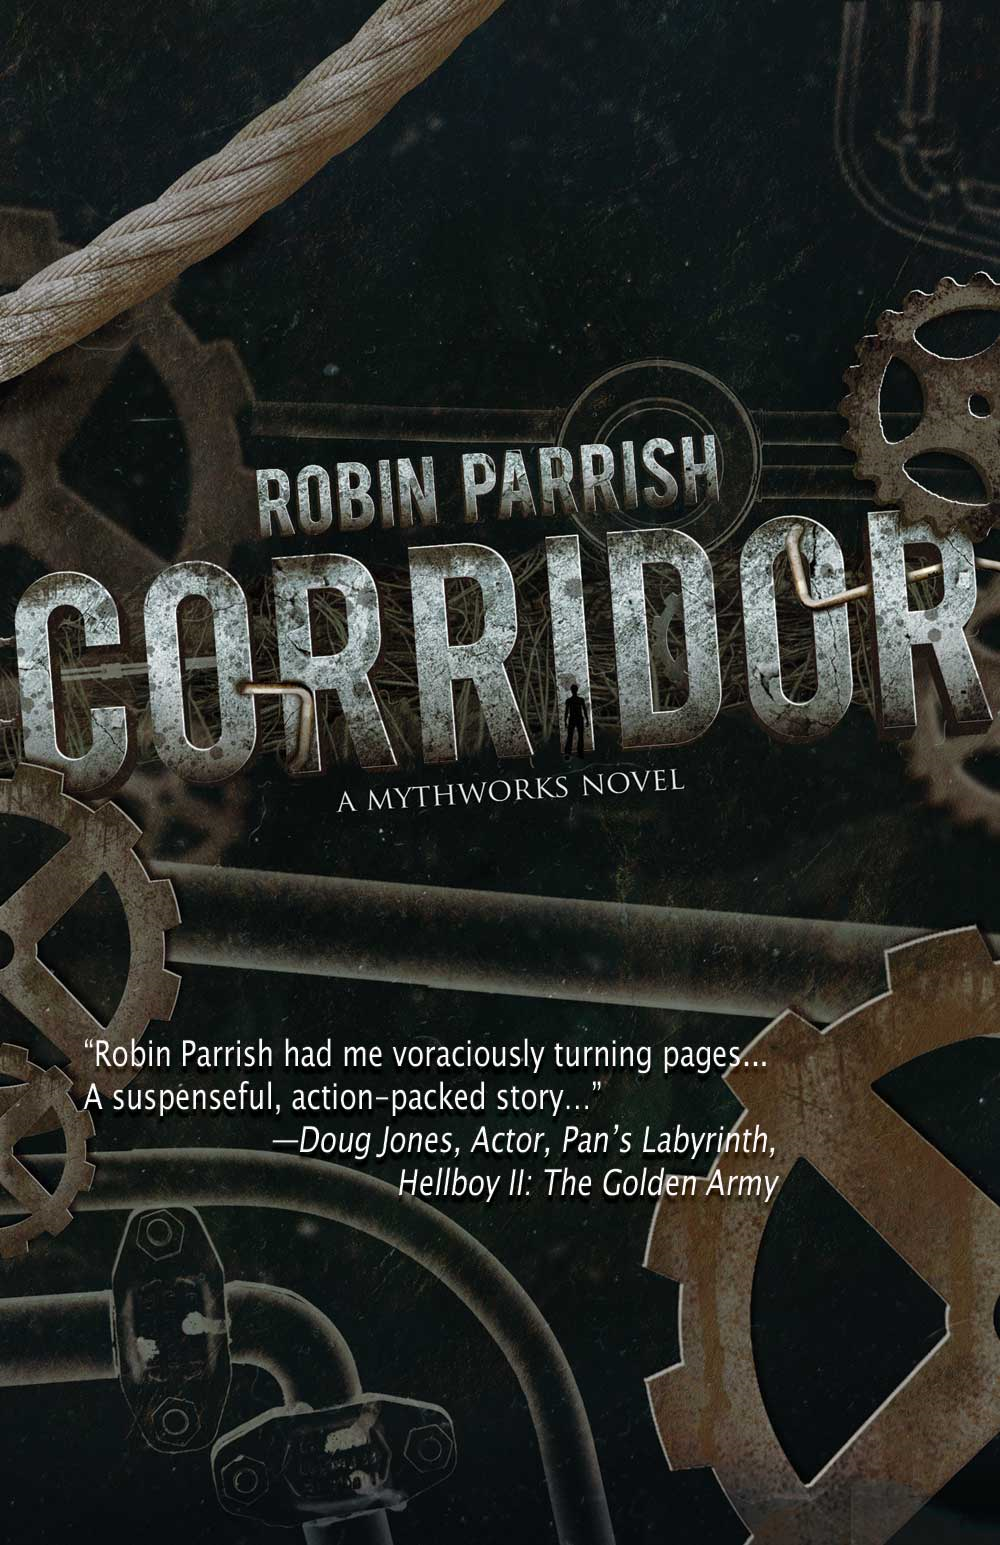 Corridor (For fans of Suzanne Collins, James Dashner, and Ally Condie)